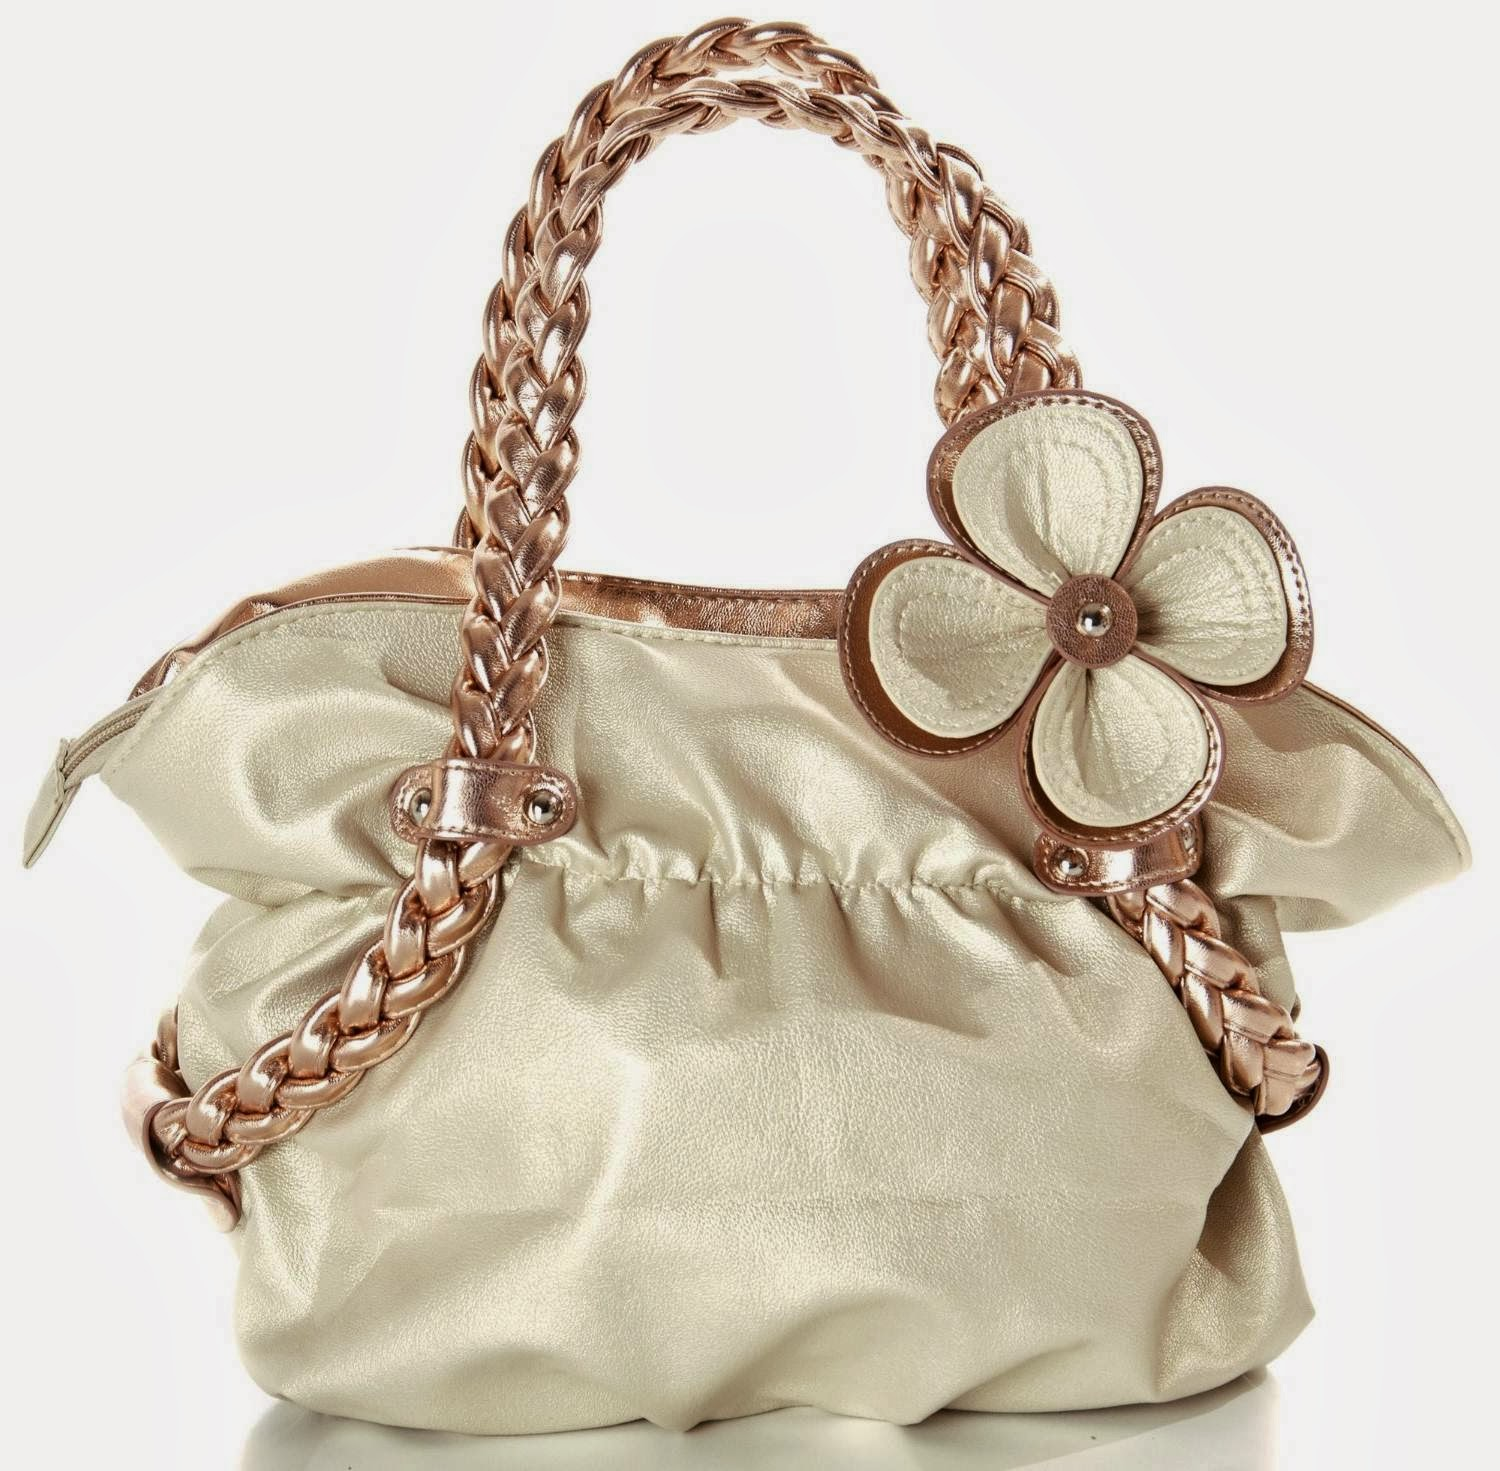 From totes to clutches, Barneys New York offers an impressive selection of designer bags, including Balenciaga, Givenchy, Fendi, Valentino, and Saint Laurent. Opens Barneys Warehouse in a new window Opens The Window in a new window Opens The Registry in a new window.